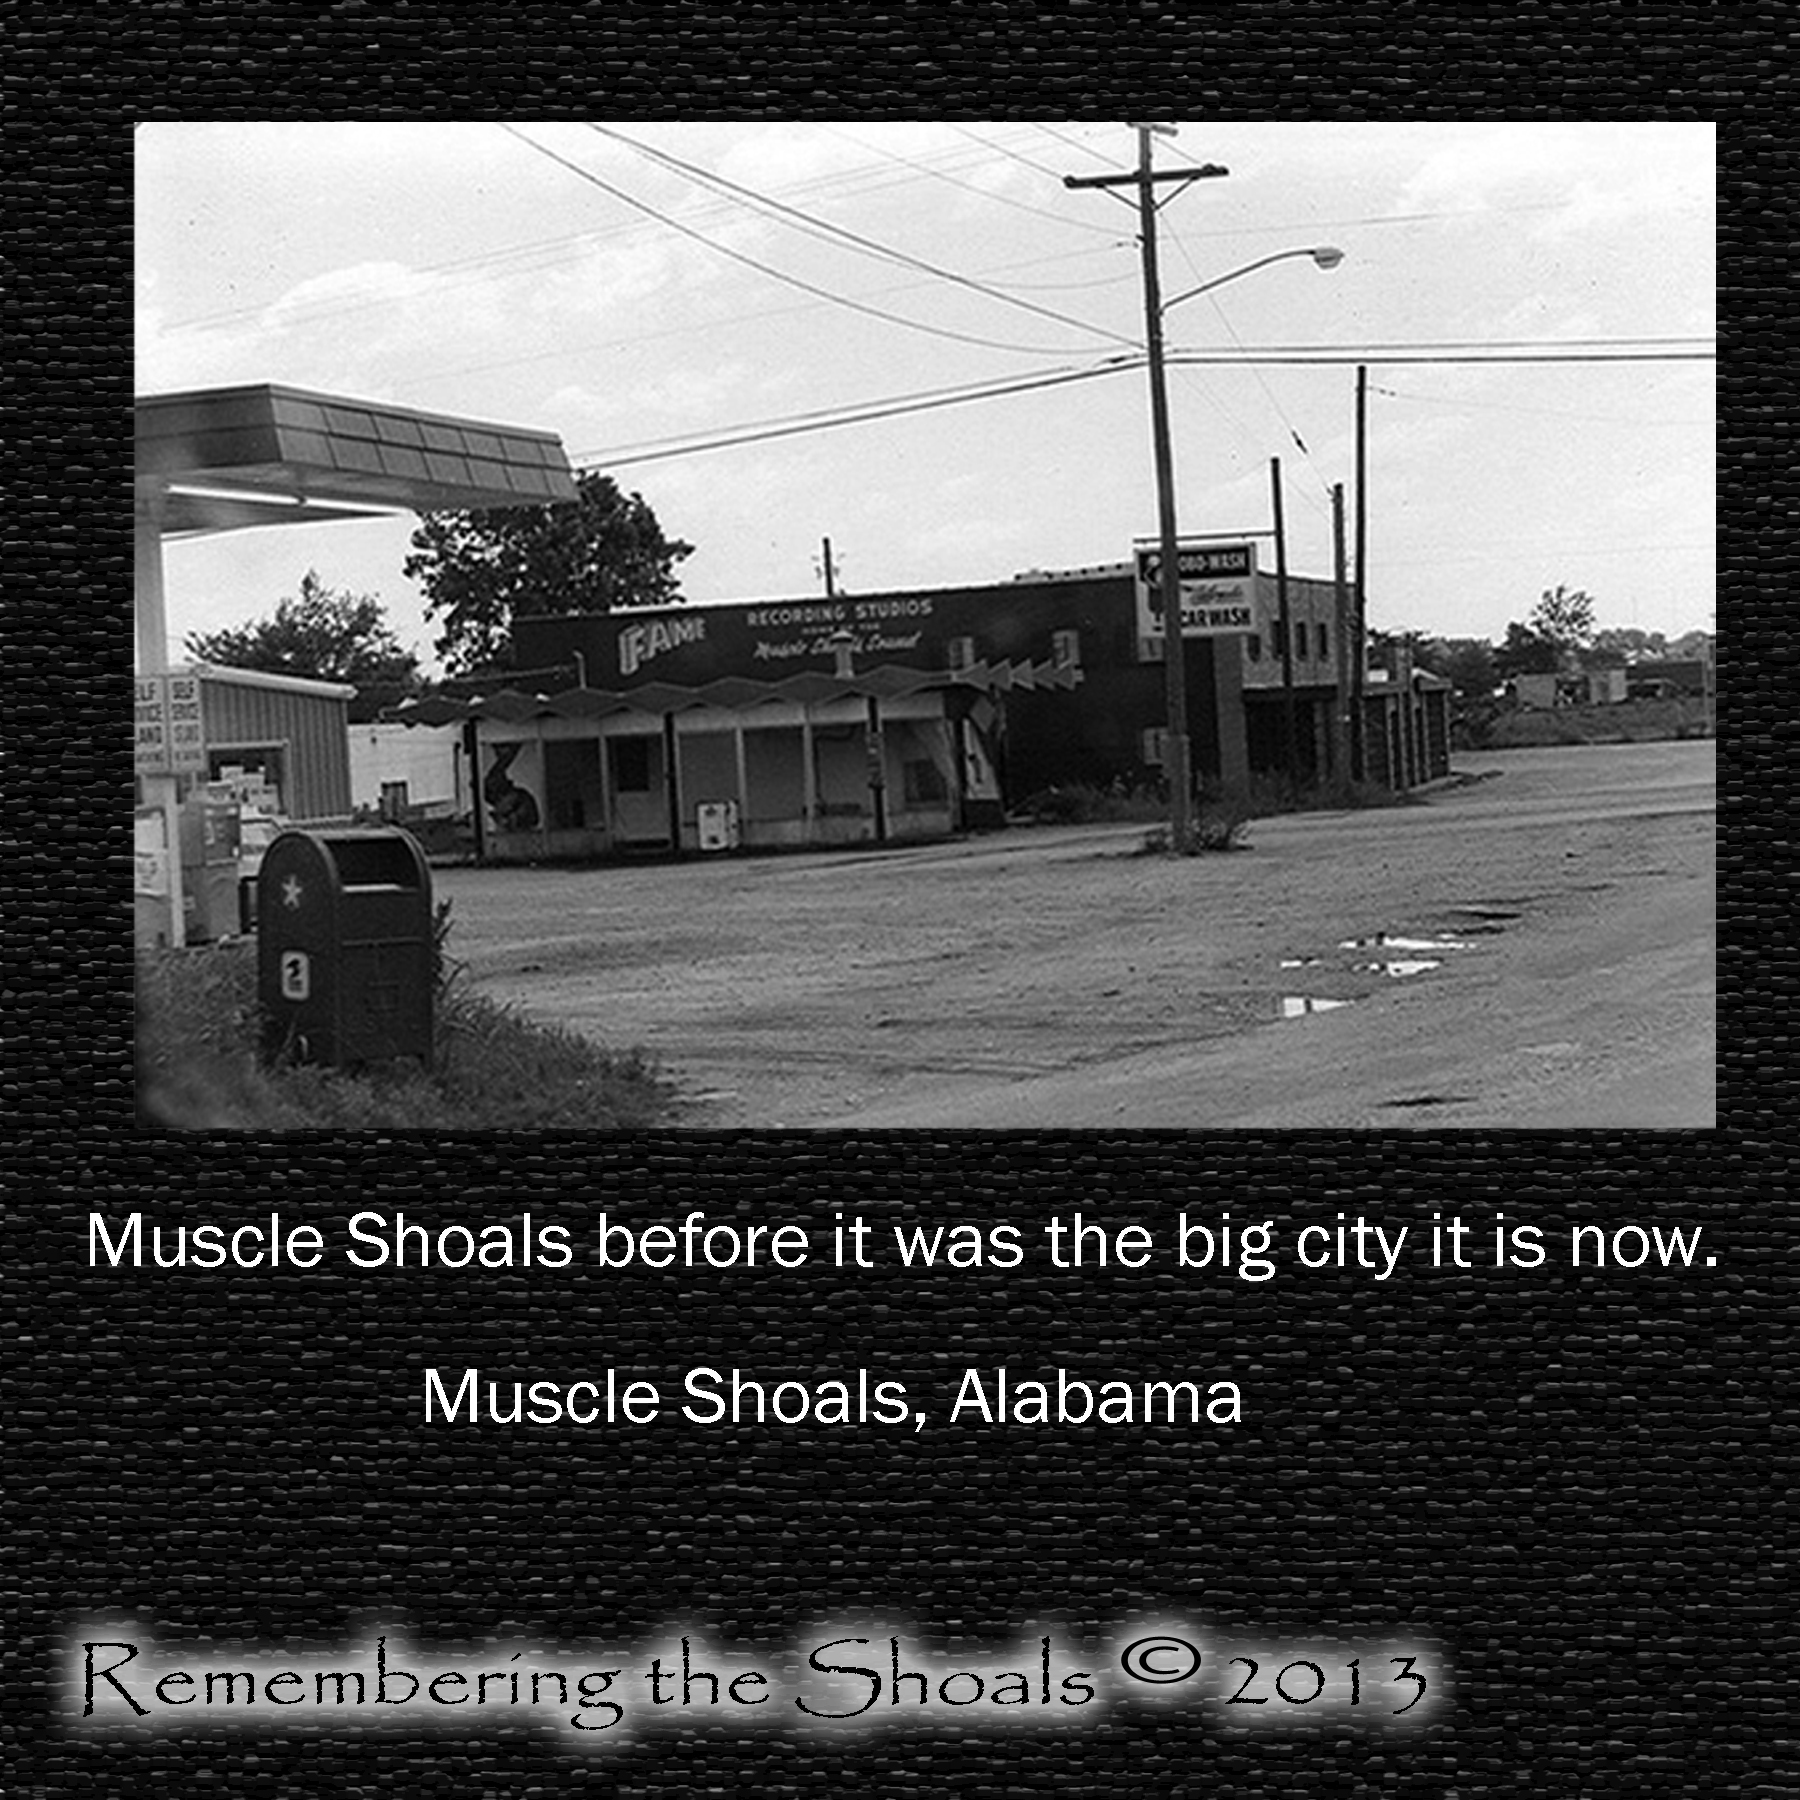 muscle shoals alabama remembering the shoals